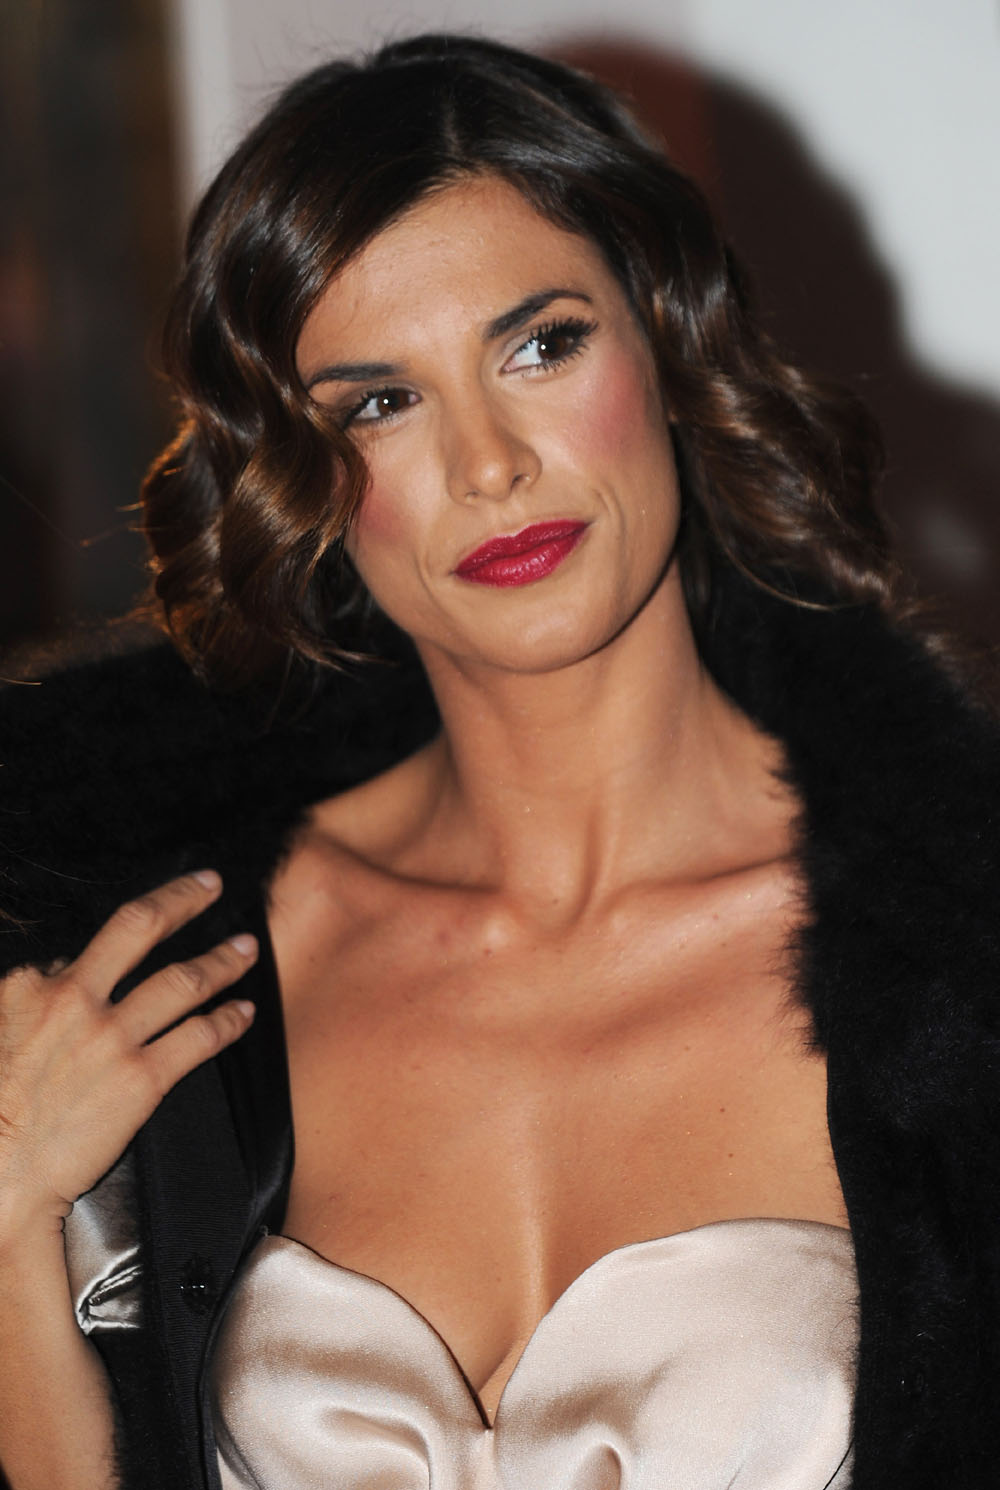 Elisabetta Canalis Photos | Fashion More Style